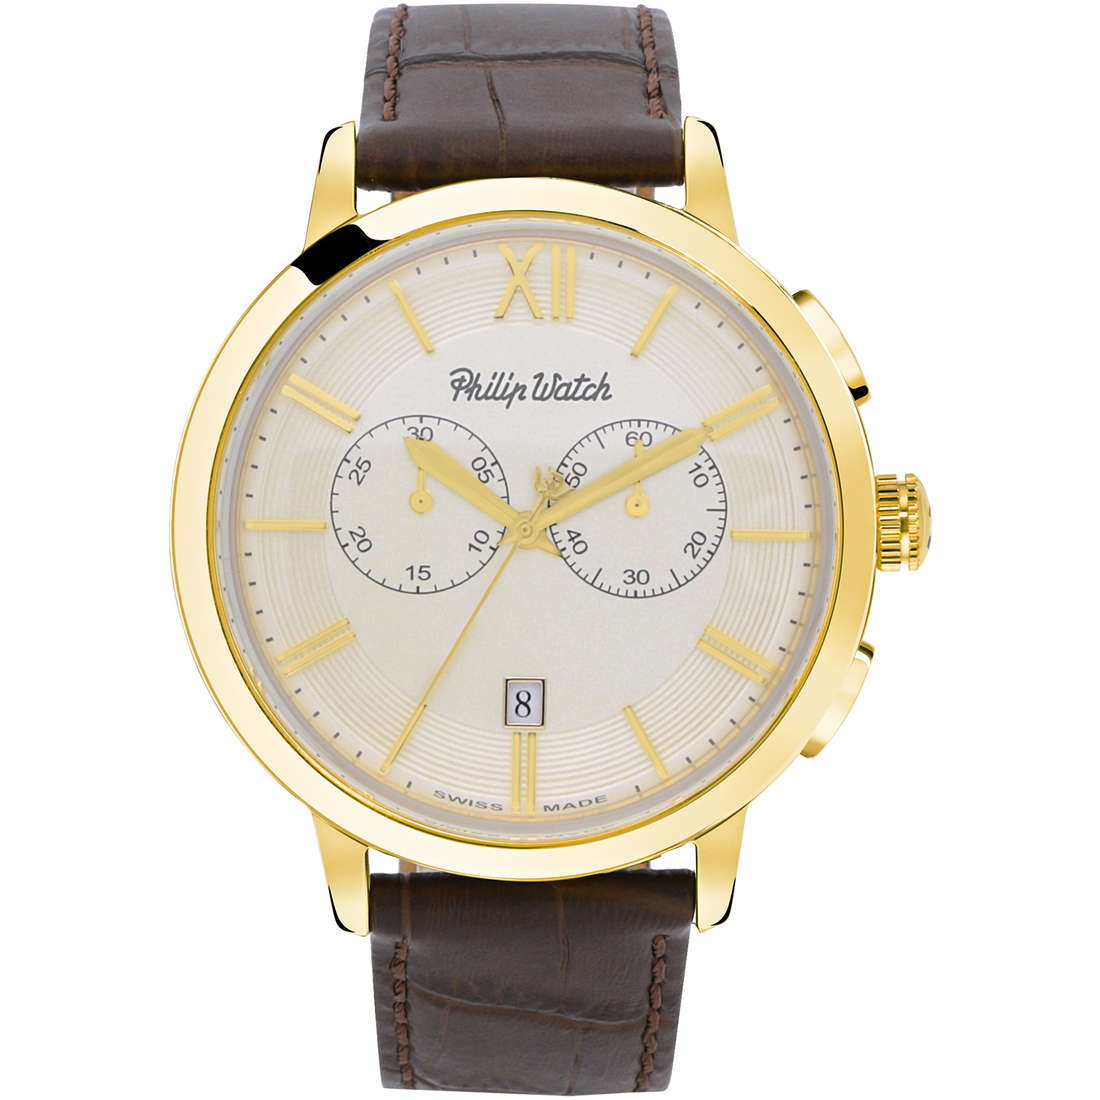 watch chronograph man Philip Watch Grand Archive R8271698006